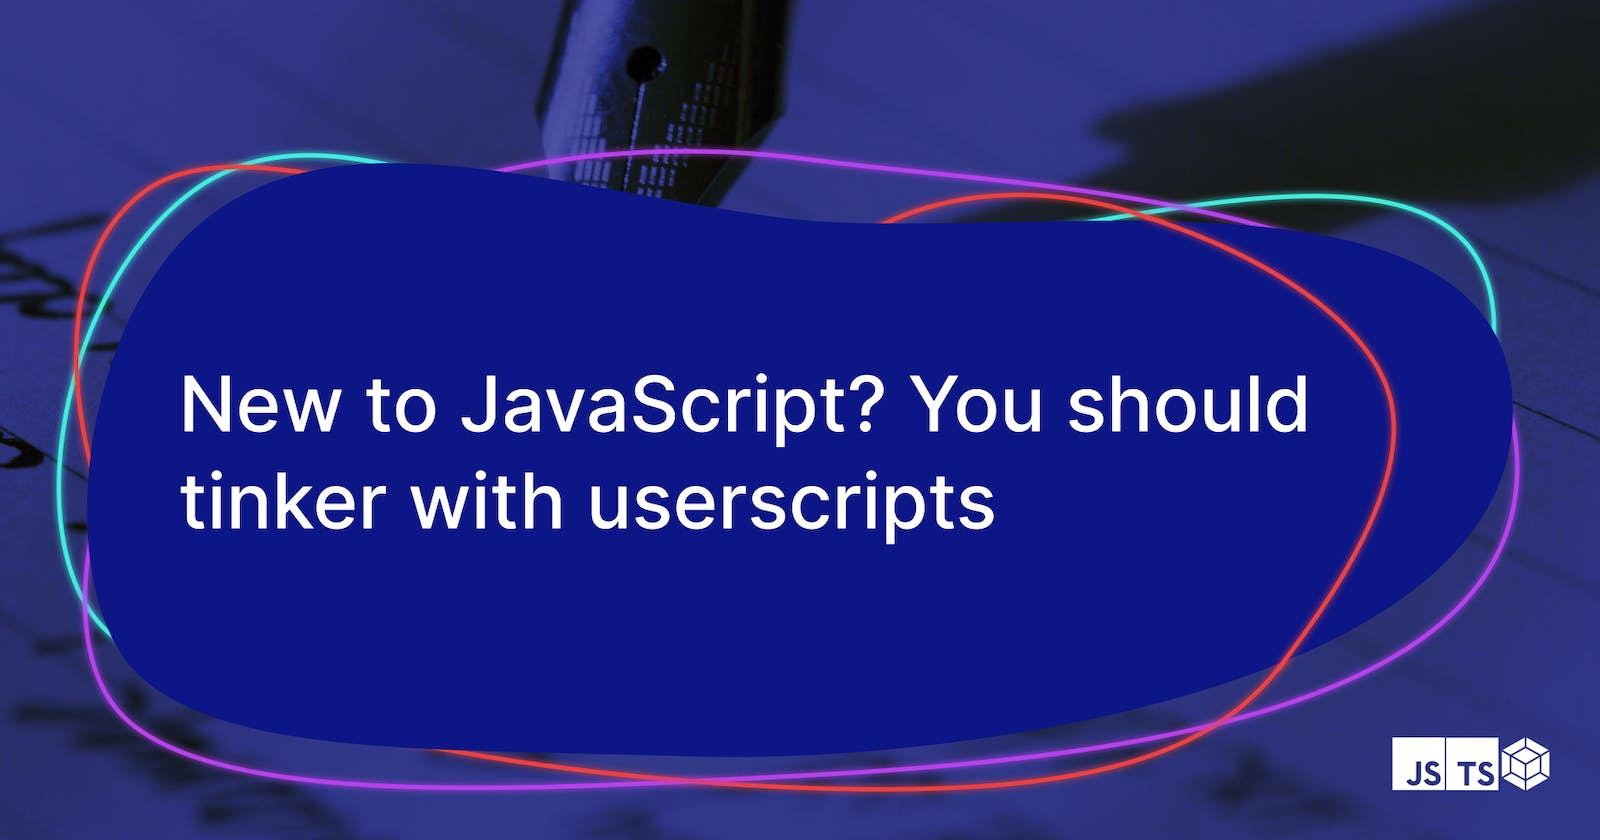 New to JavaScript? You should tinker with userscripts